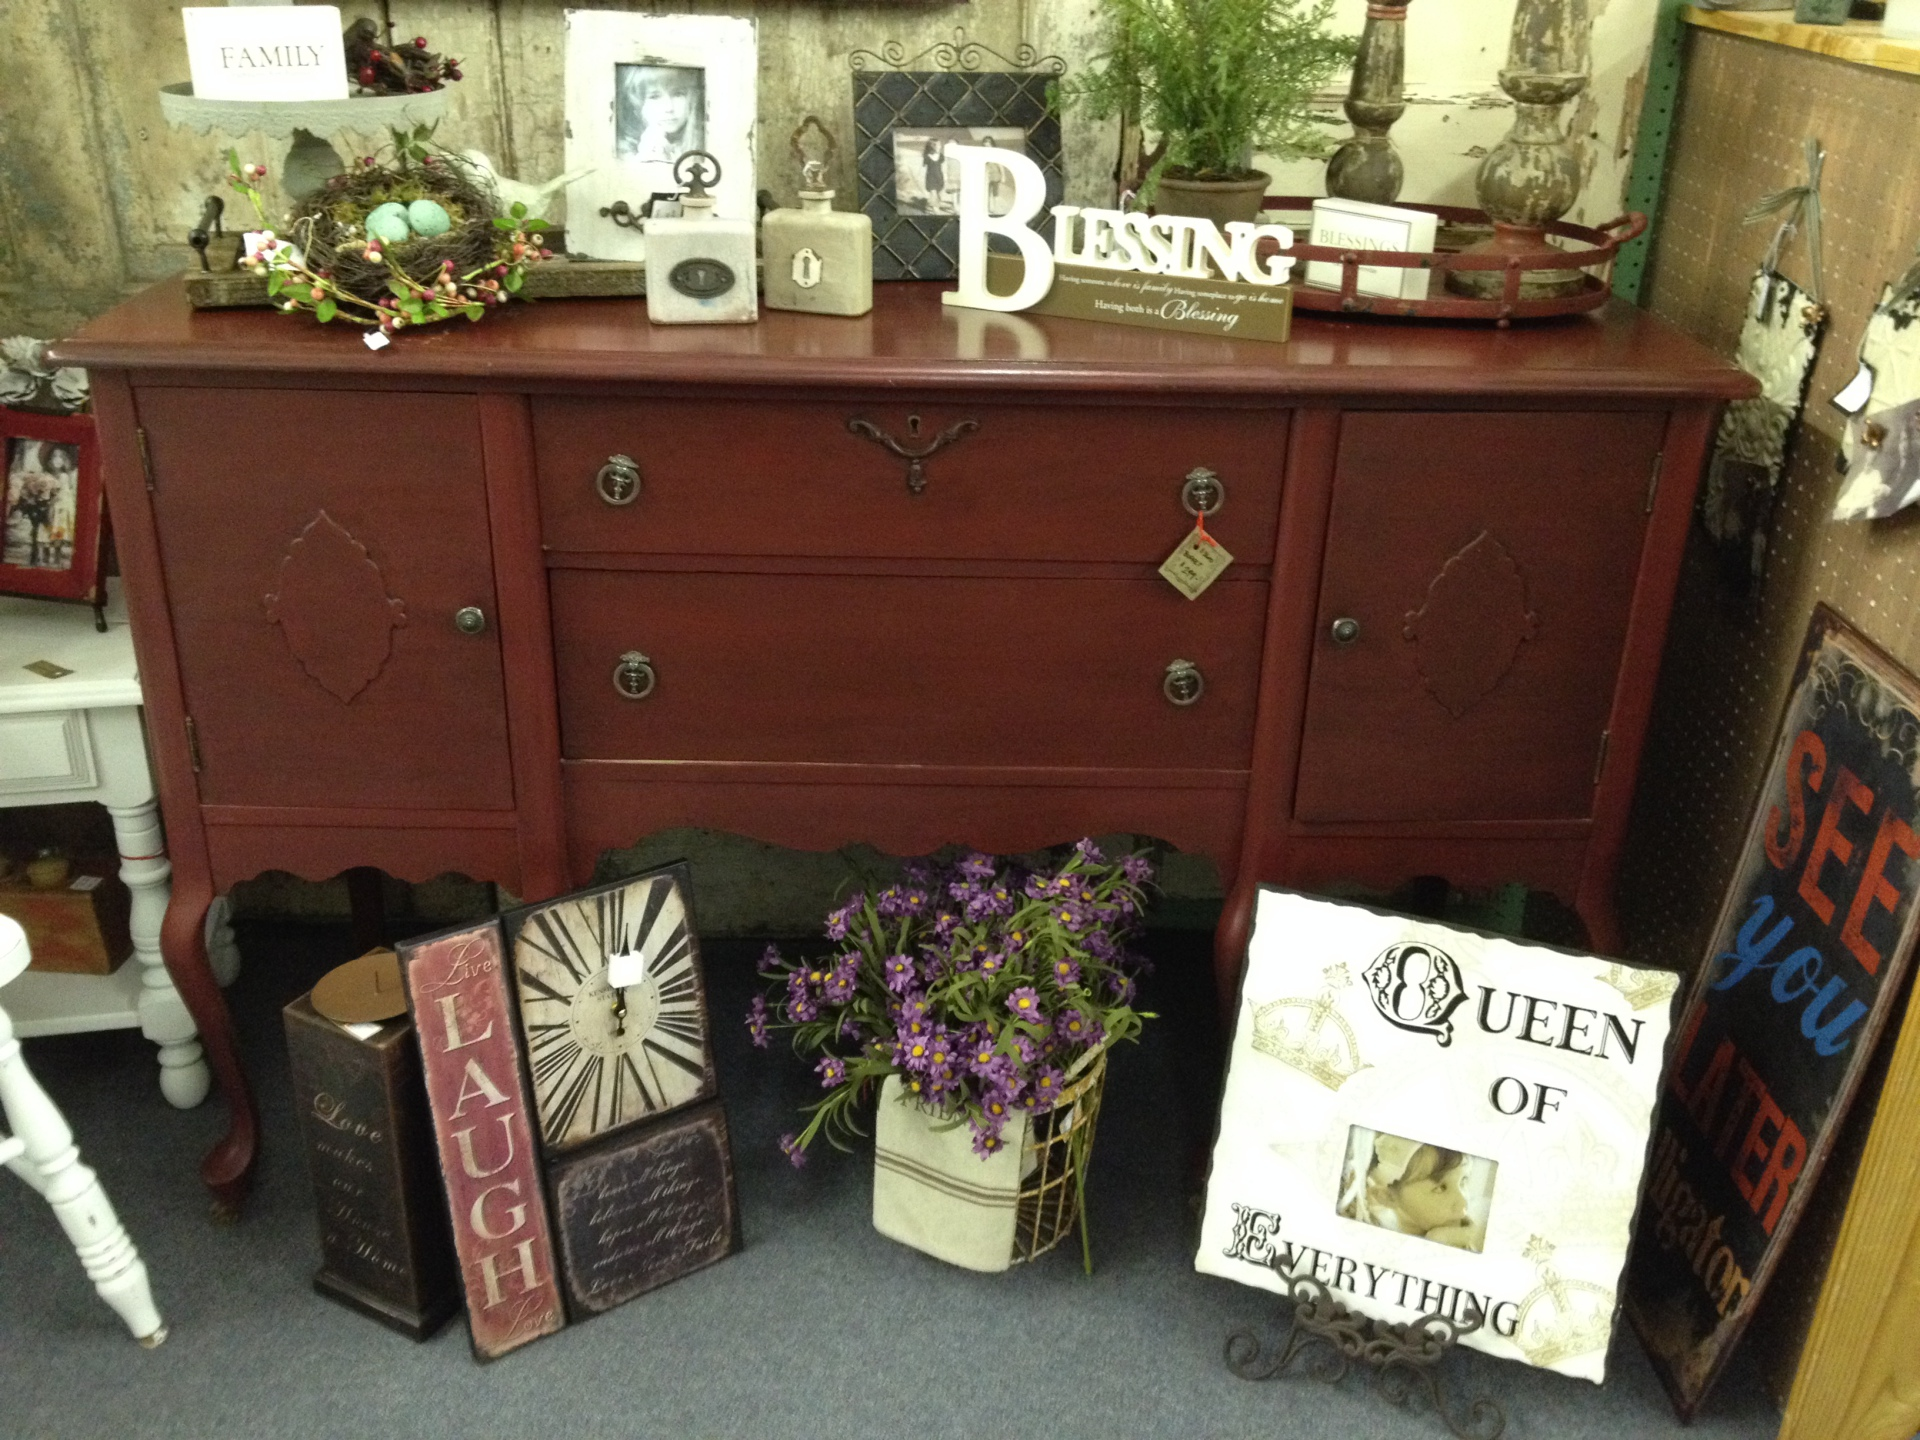 Restored antique buffet, Blessing sign, candle holders, wreaths, and picture frame.